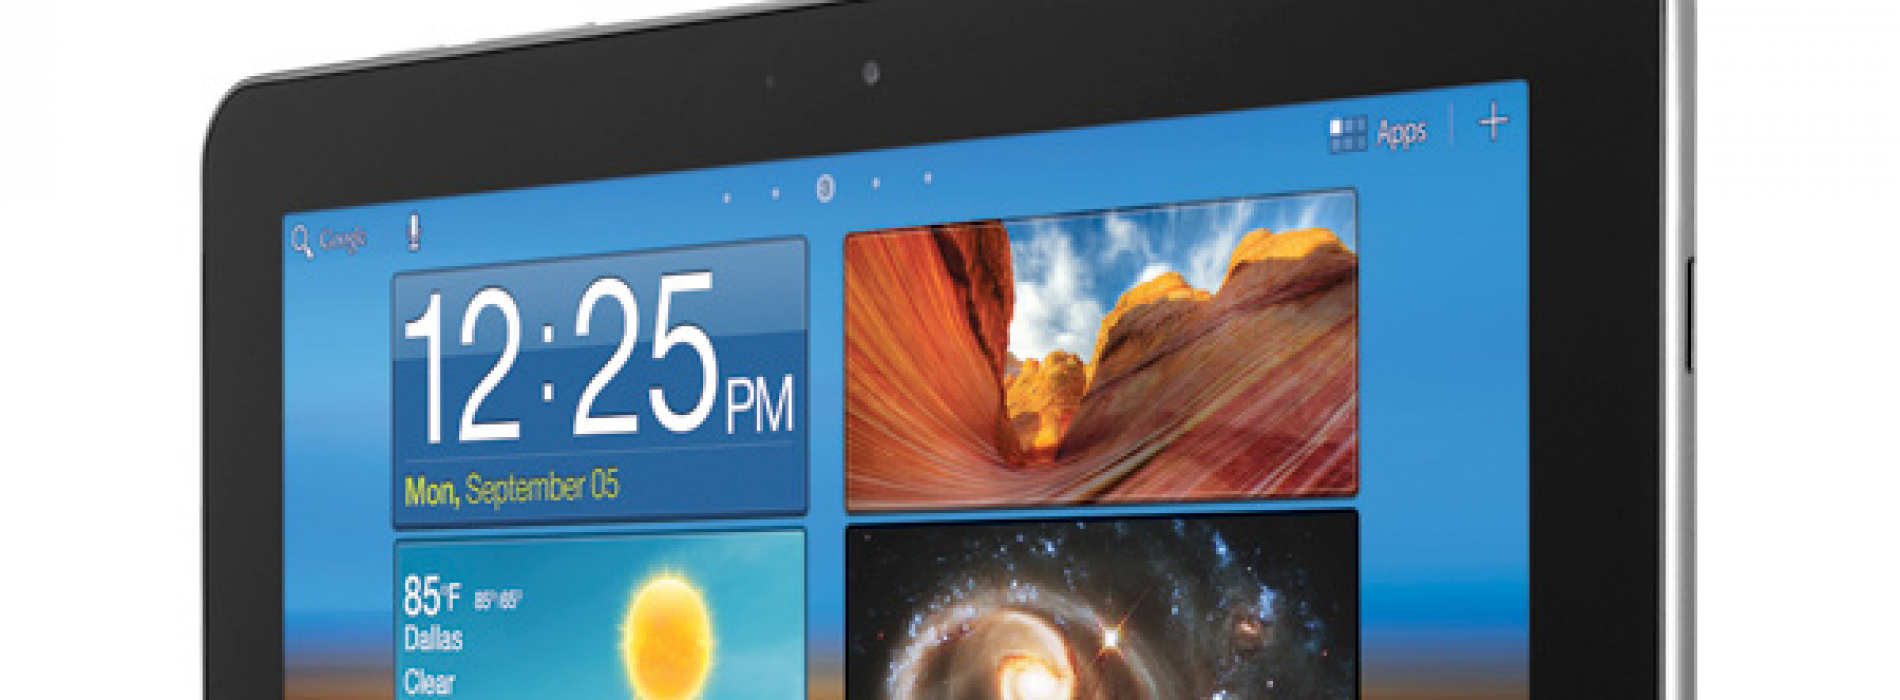 AT&T announces 4G LTE-enabled Samsung Galaxy Tab 8.9 for November 20